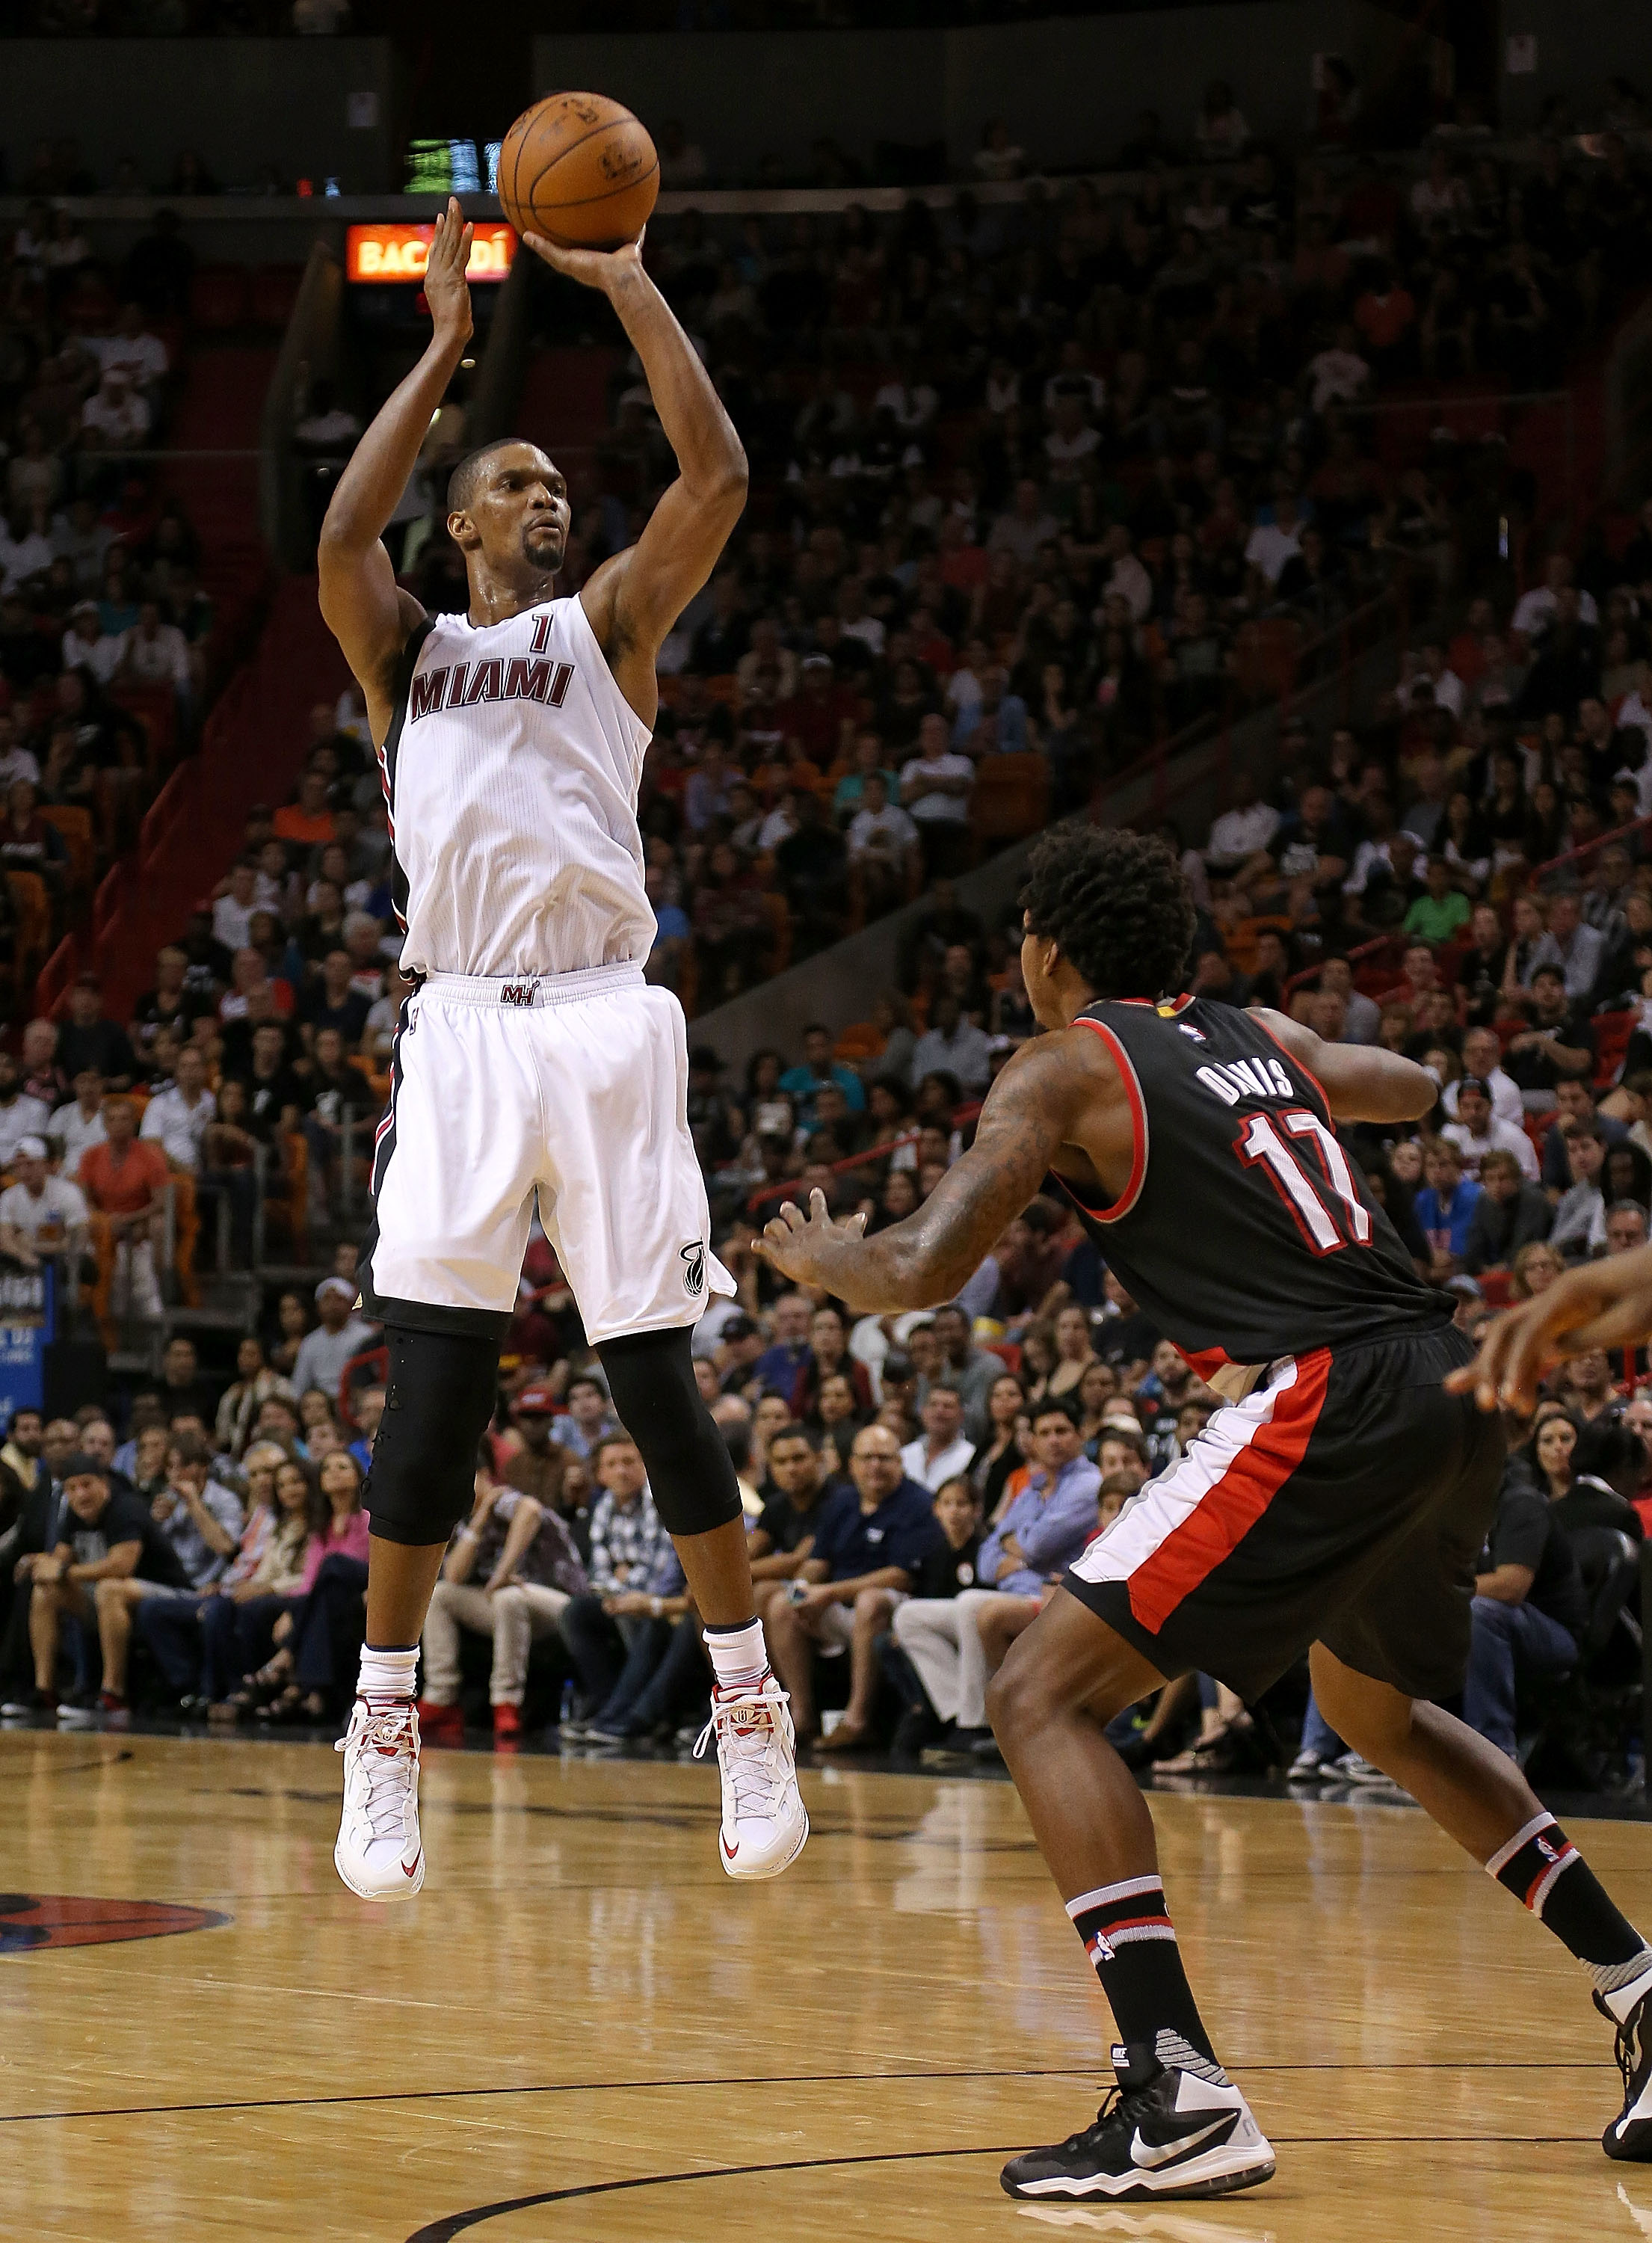 MIAMI, FL - DECEMBER 20:  Chris Bosh #1 of the Miami Heat is guarded by Ed Davis #17 of the Portland Trail Blazers during a game  at American Airlines Arena on December 20, 2015 in Miami, Florida. (Photo by Mike Ehrmann/Getty Images)